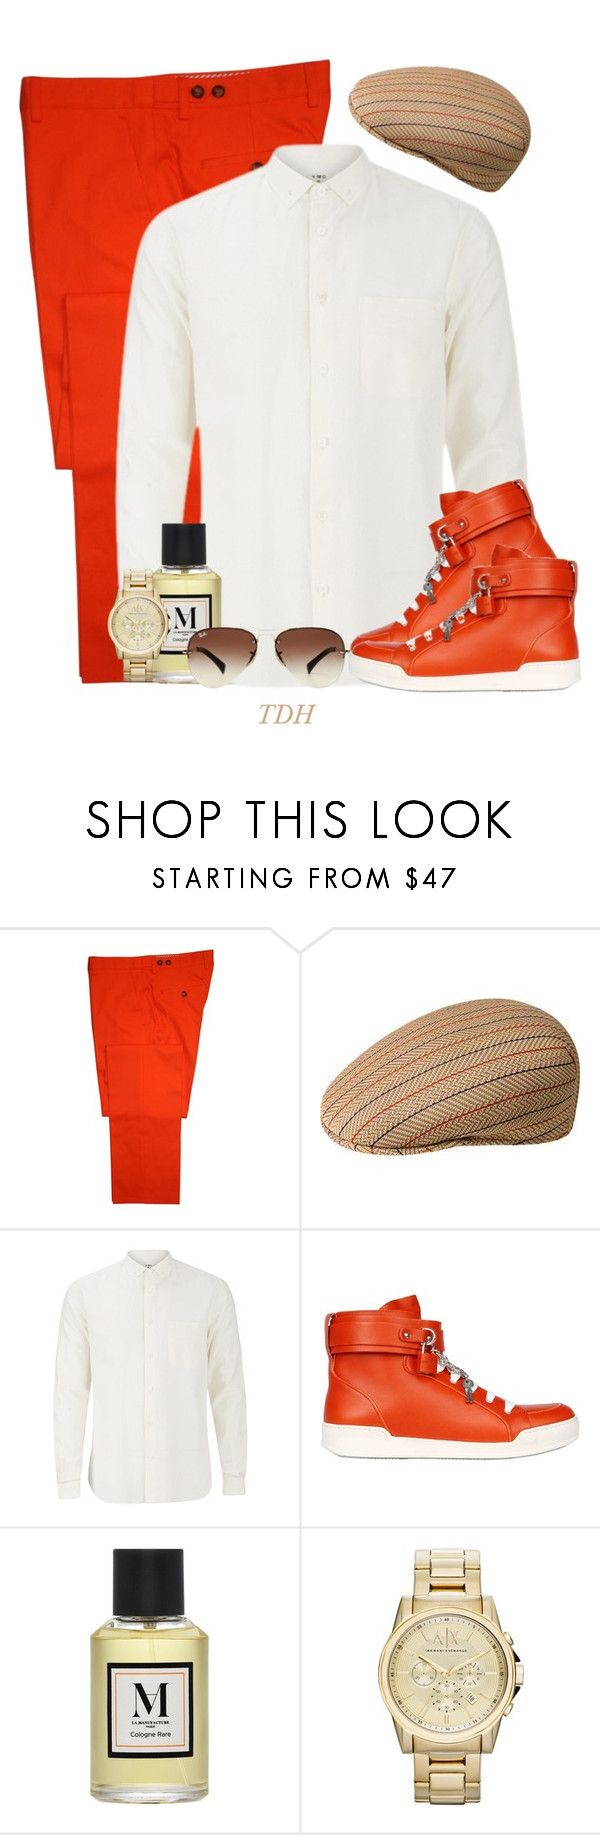 """""""Date Night with Him"""" by talvadh ❤ liked on Polyvore featuring Gresham Blake, kangol, YMC, Dsquared2, Armani Exchange, Ray-Ban, men's fashion and menswear"""